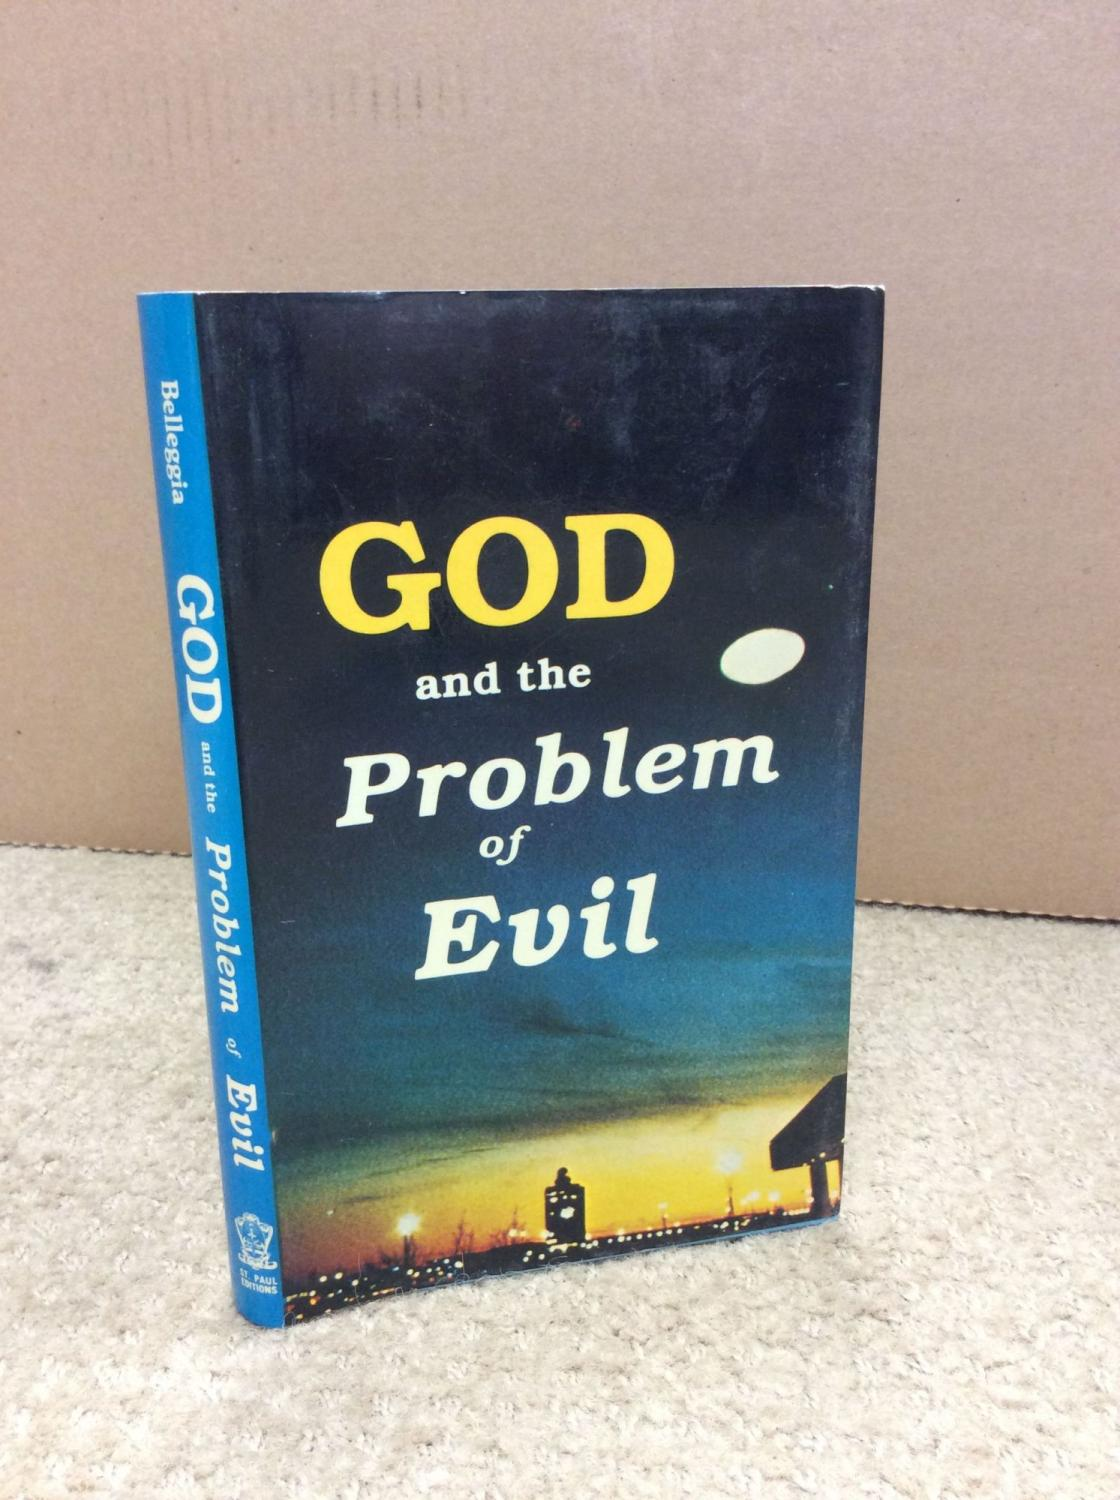 problem of evil and god God, dostoyevsky, and the problem of evil reconciling the two problems of evil in avoiding one evil, care must be taken not to fall into another — aesop [1.